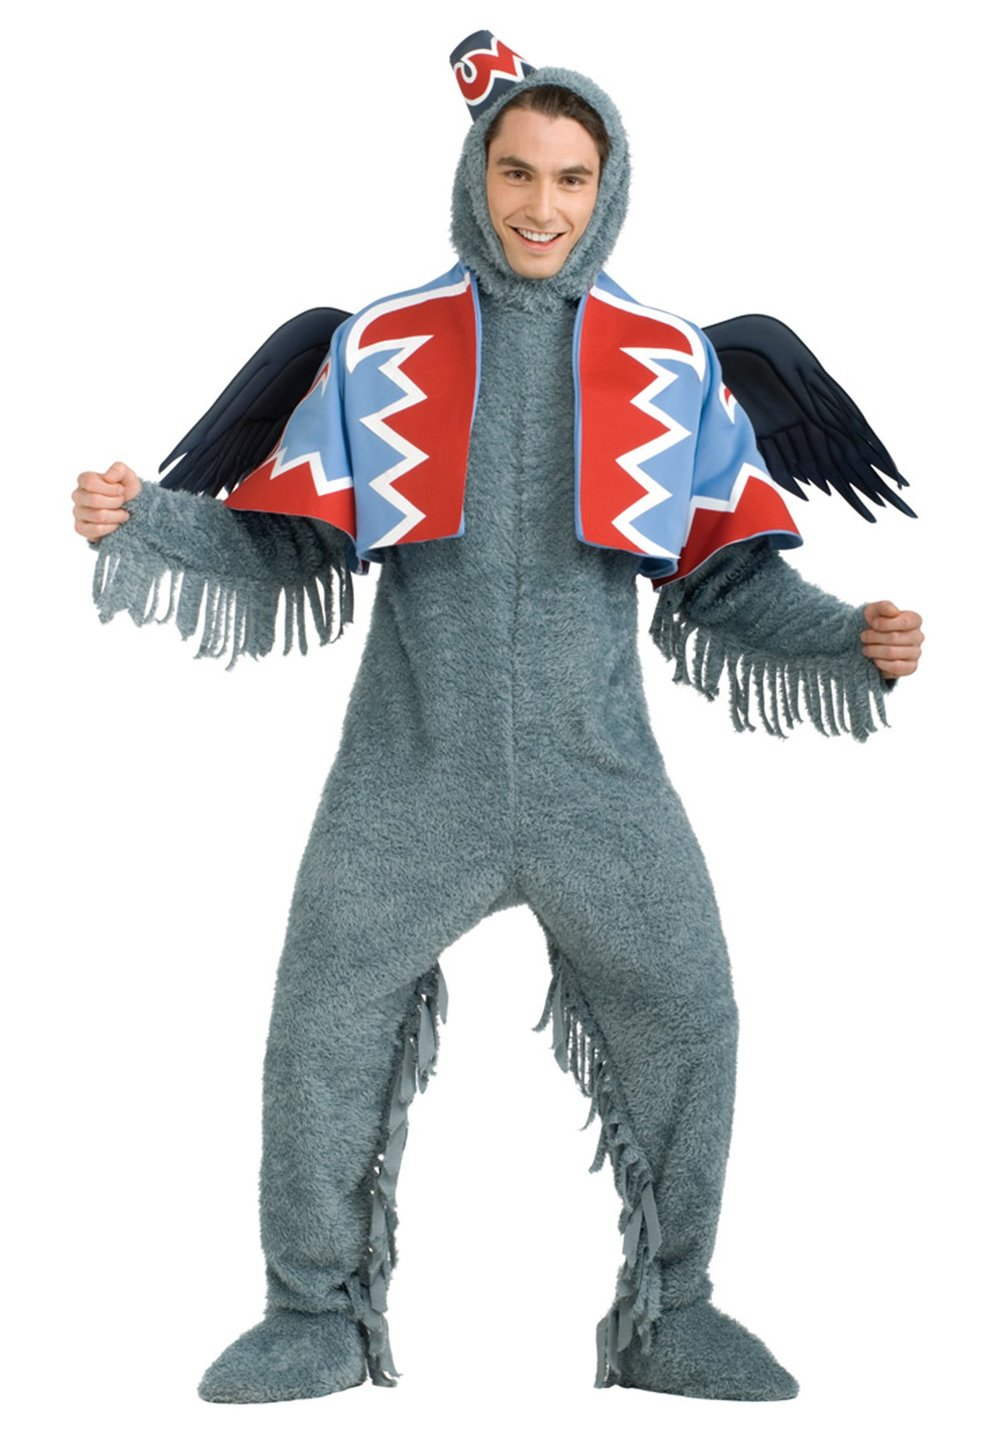 flying-monkey-costume.jpg